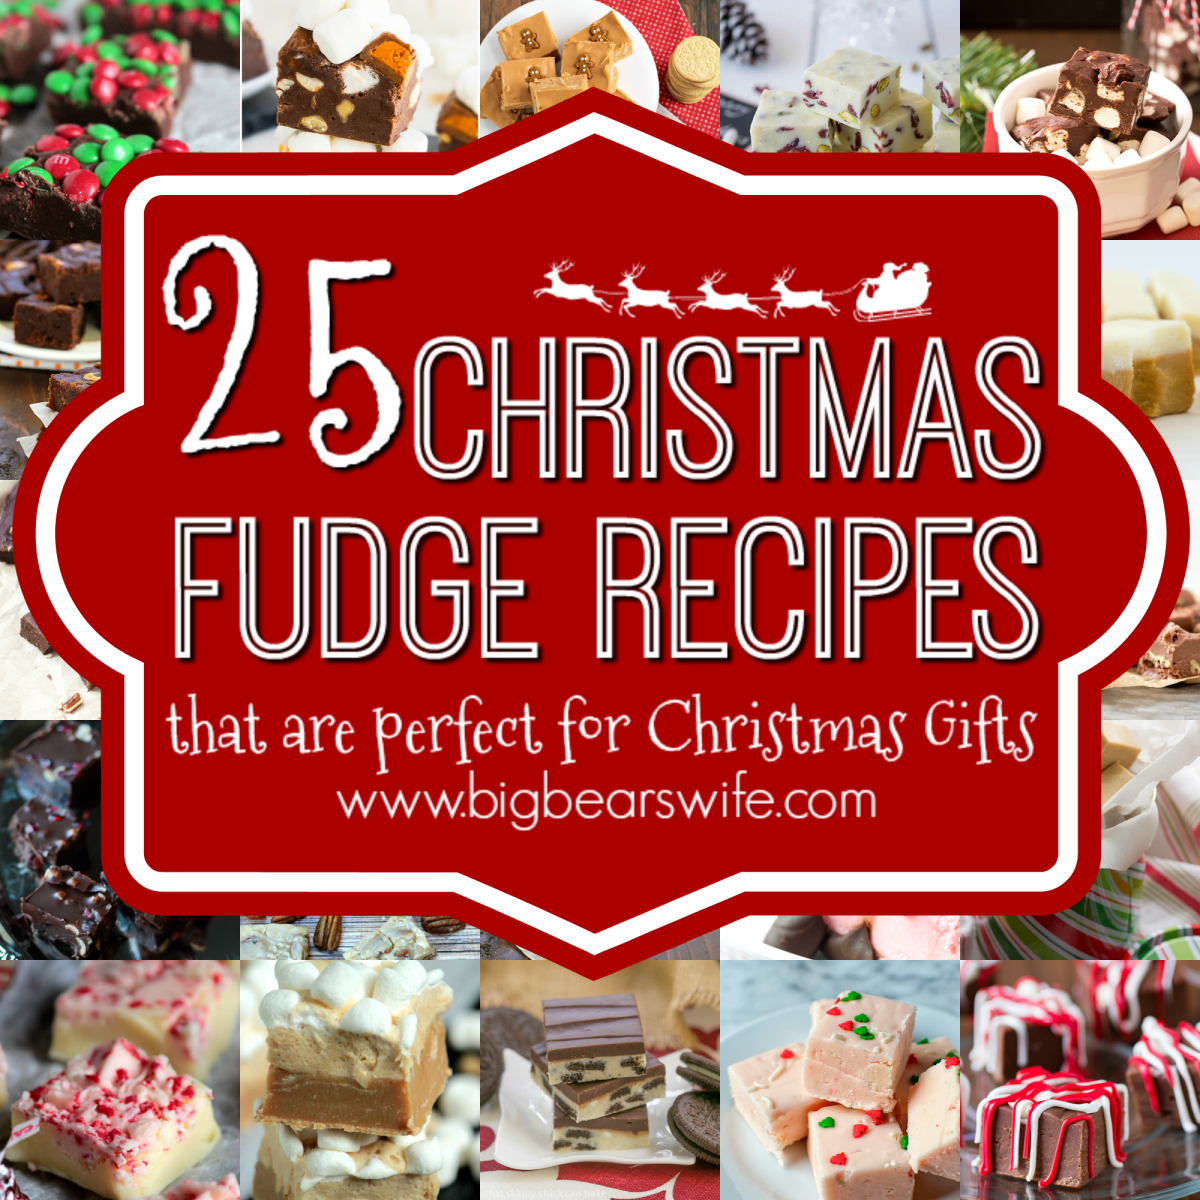 Christmas Gifts Pictures: 25 Christmas Fudge Recipes That Are Perfect For Christmas